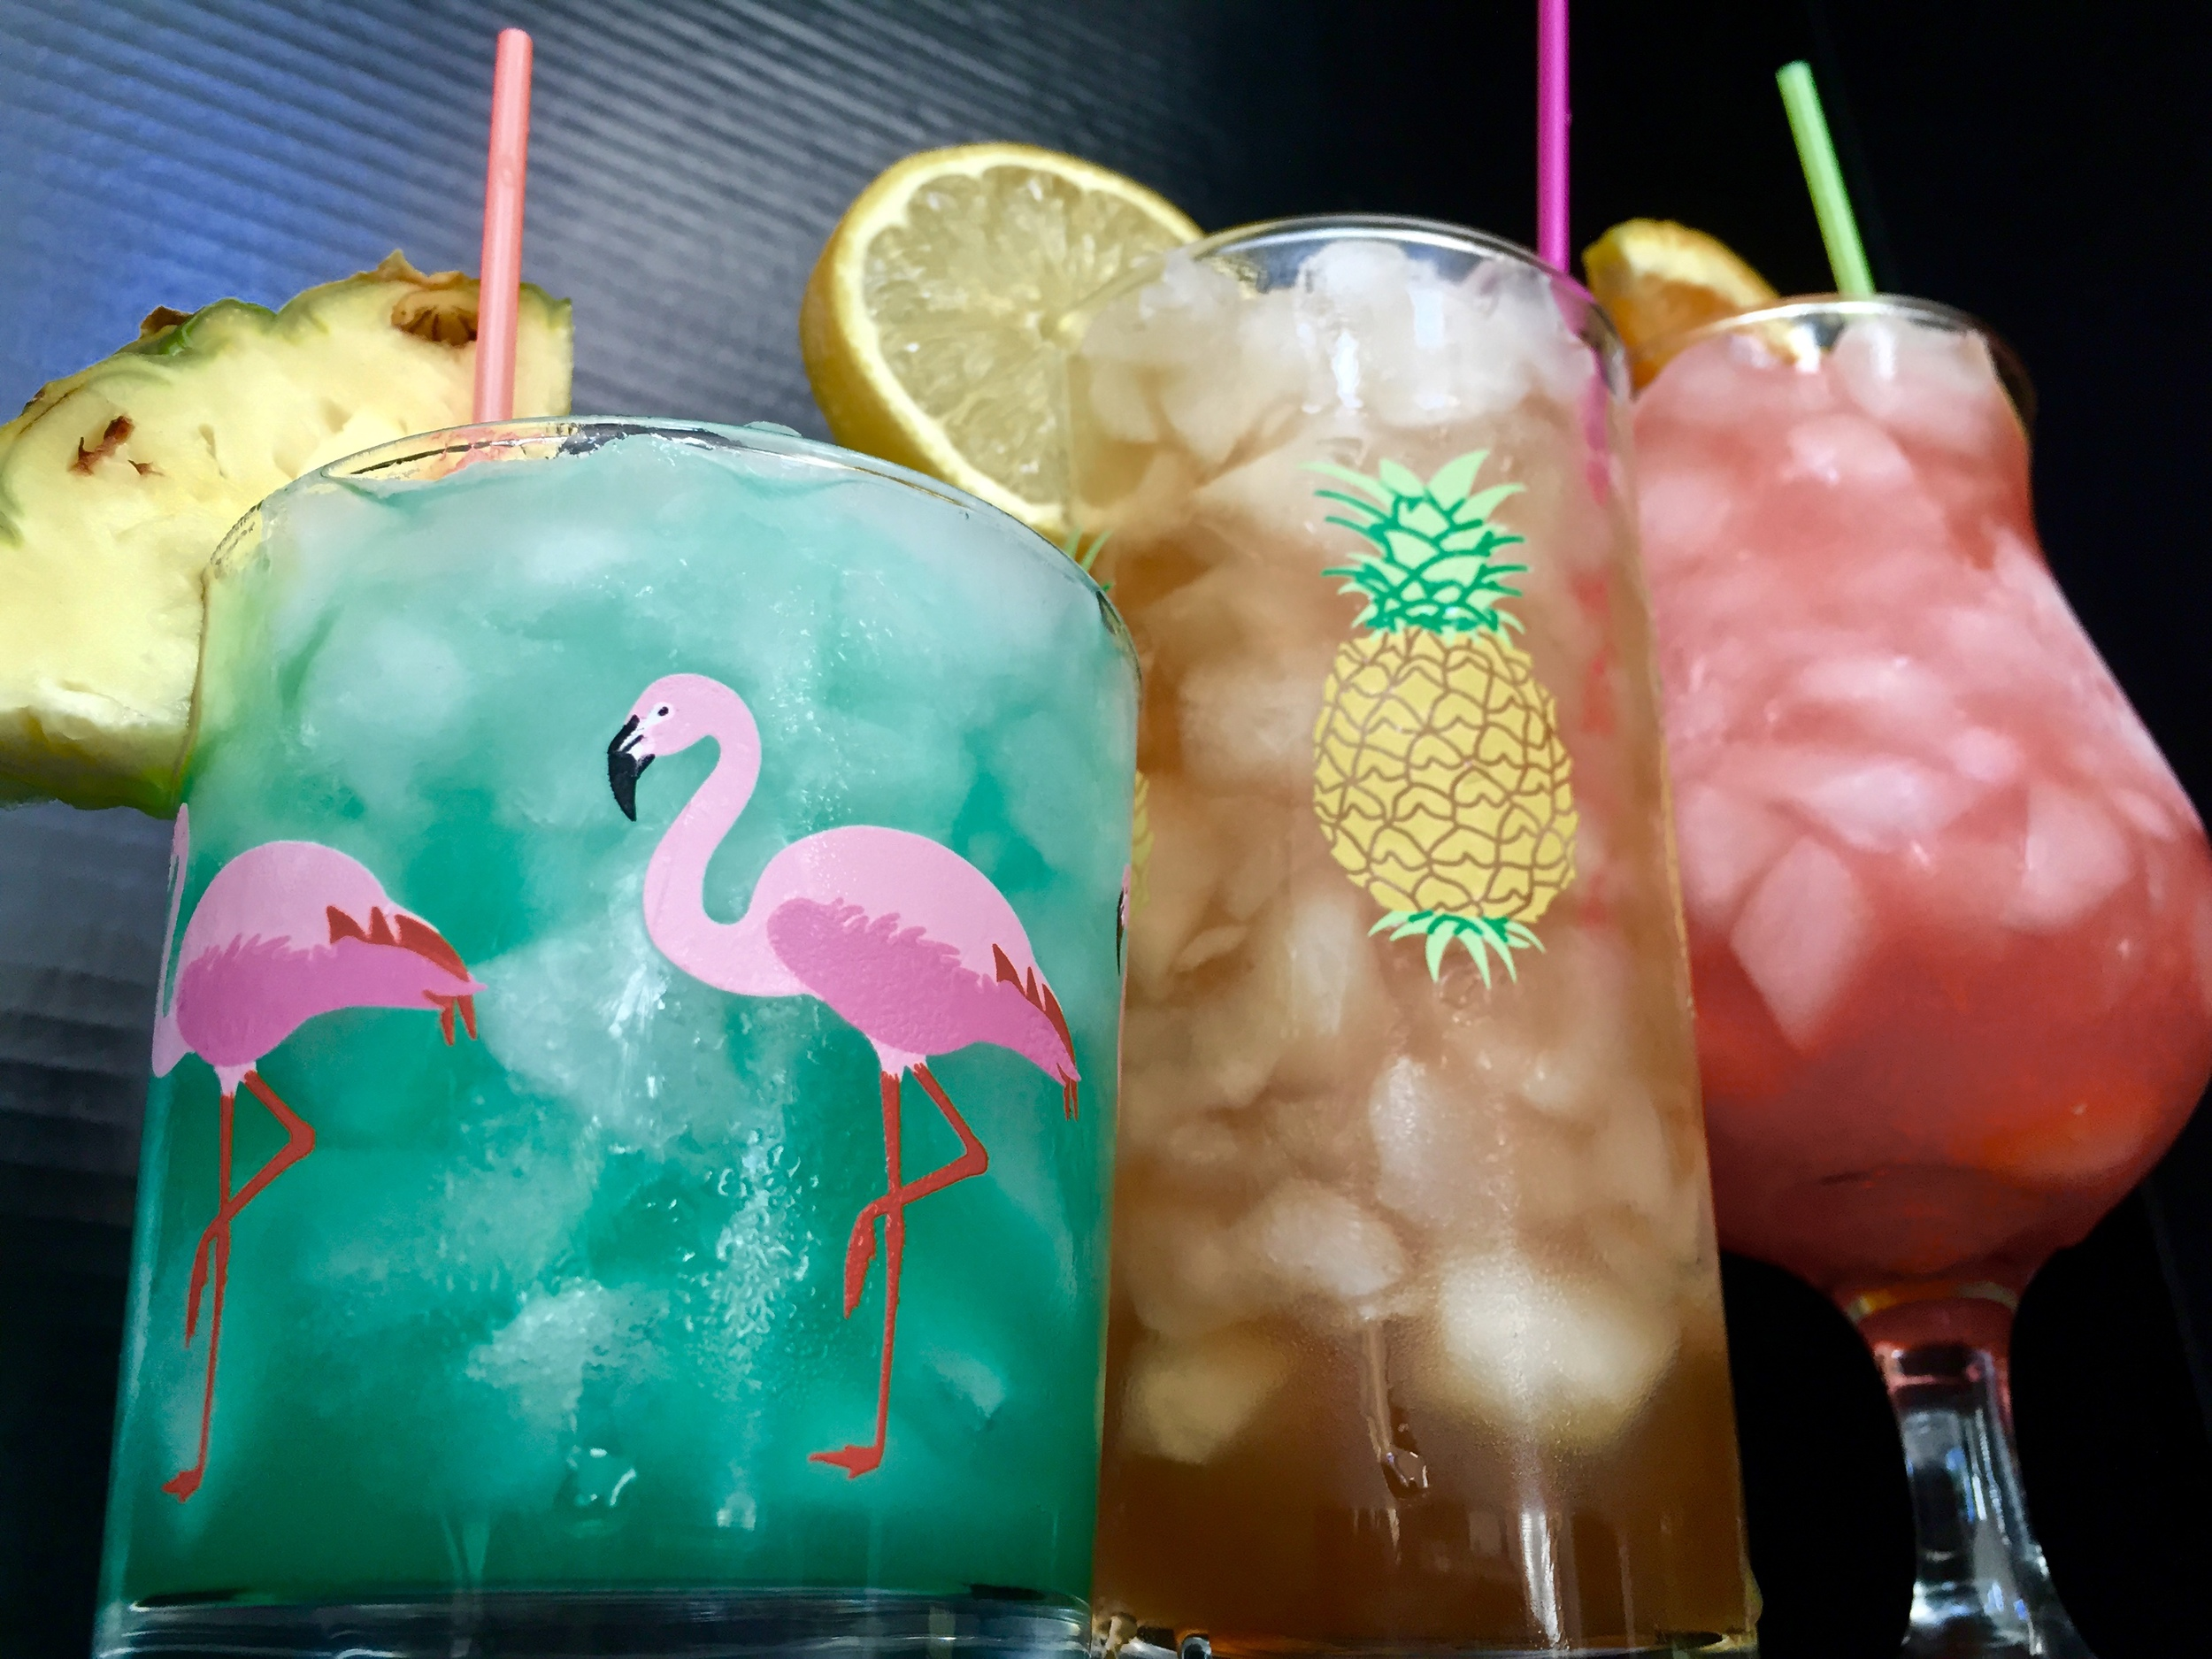 From Left: Blue Hawaiian'd, Maui Iced Tea, Just Sex